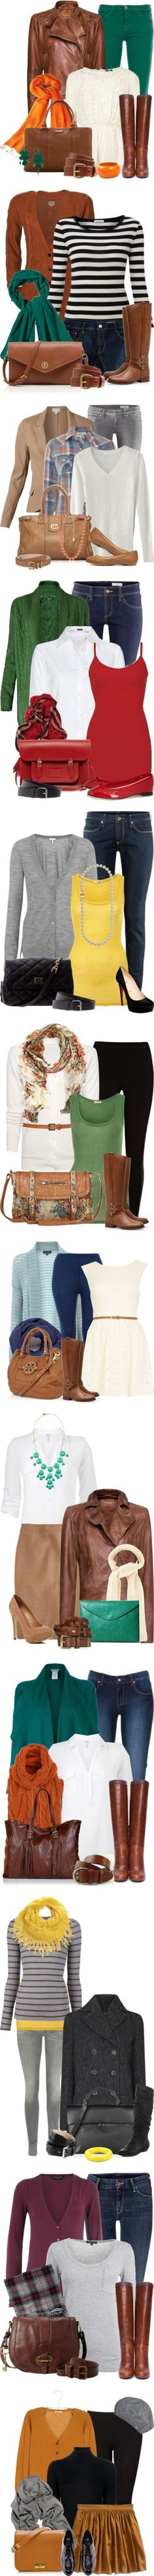 """""""Let the Clothes Do the Talking"""" by chelseagirlfashion on Polyvore"""